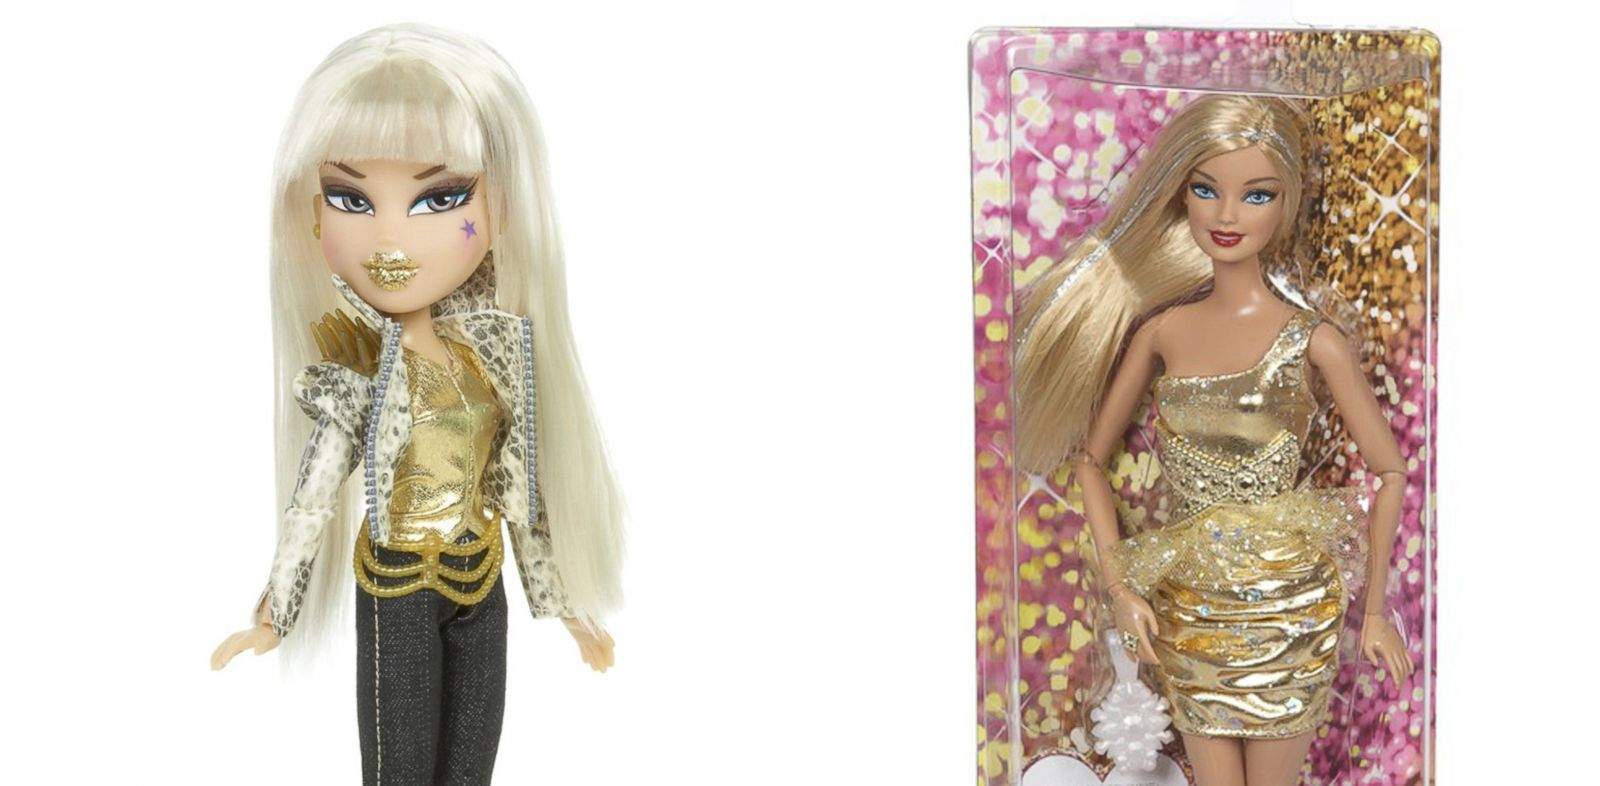 PHOTO: A new round began this week in the Bratz vs. Barbie doll maker fight, as MGA Entertainment (Bratz) demanded $1 billion from Mattel (Barbie) in a lawsuit alleging corporate spying.